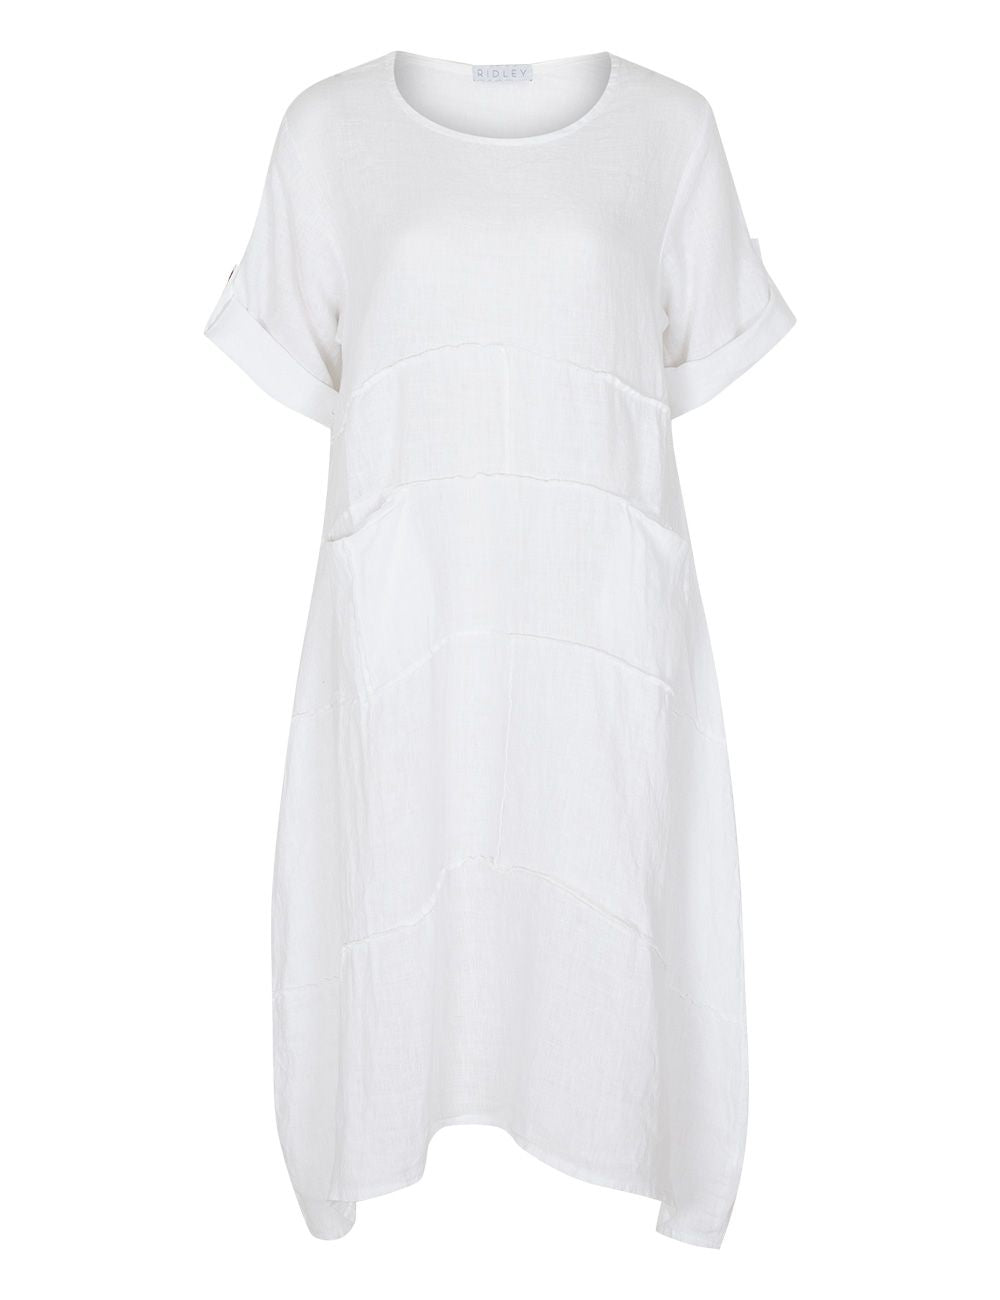 Come Together Linen Dress